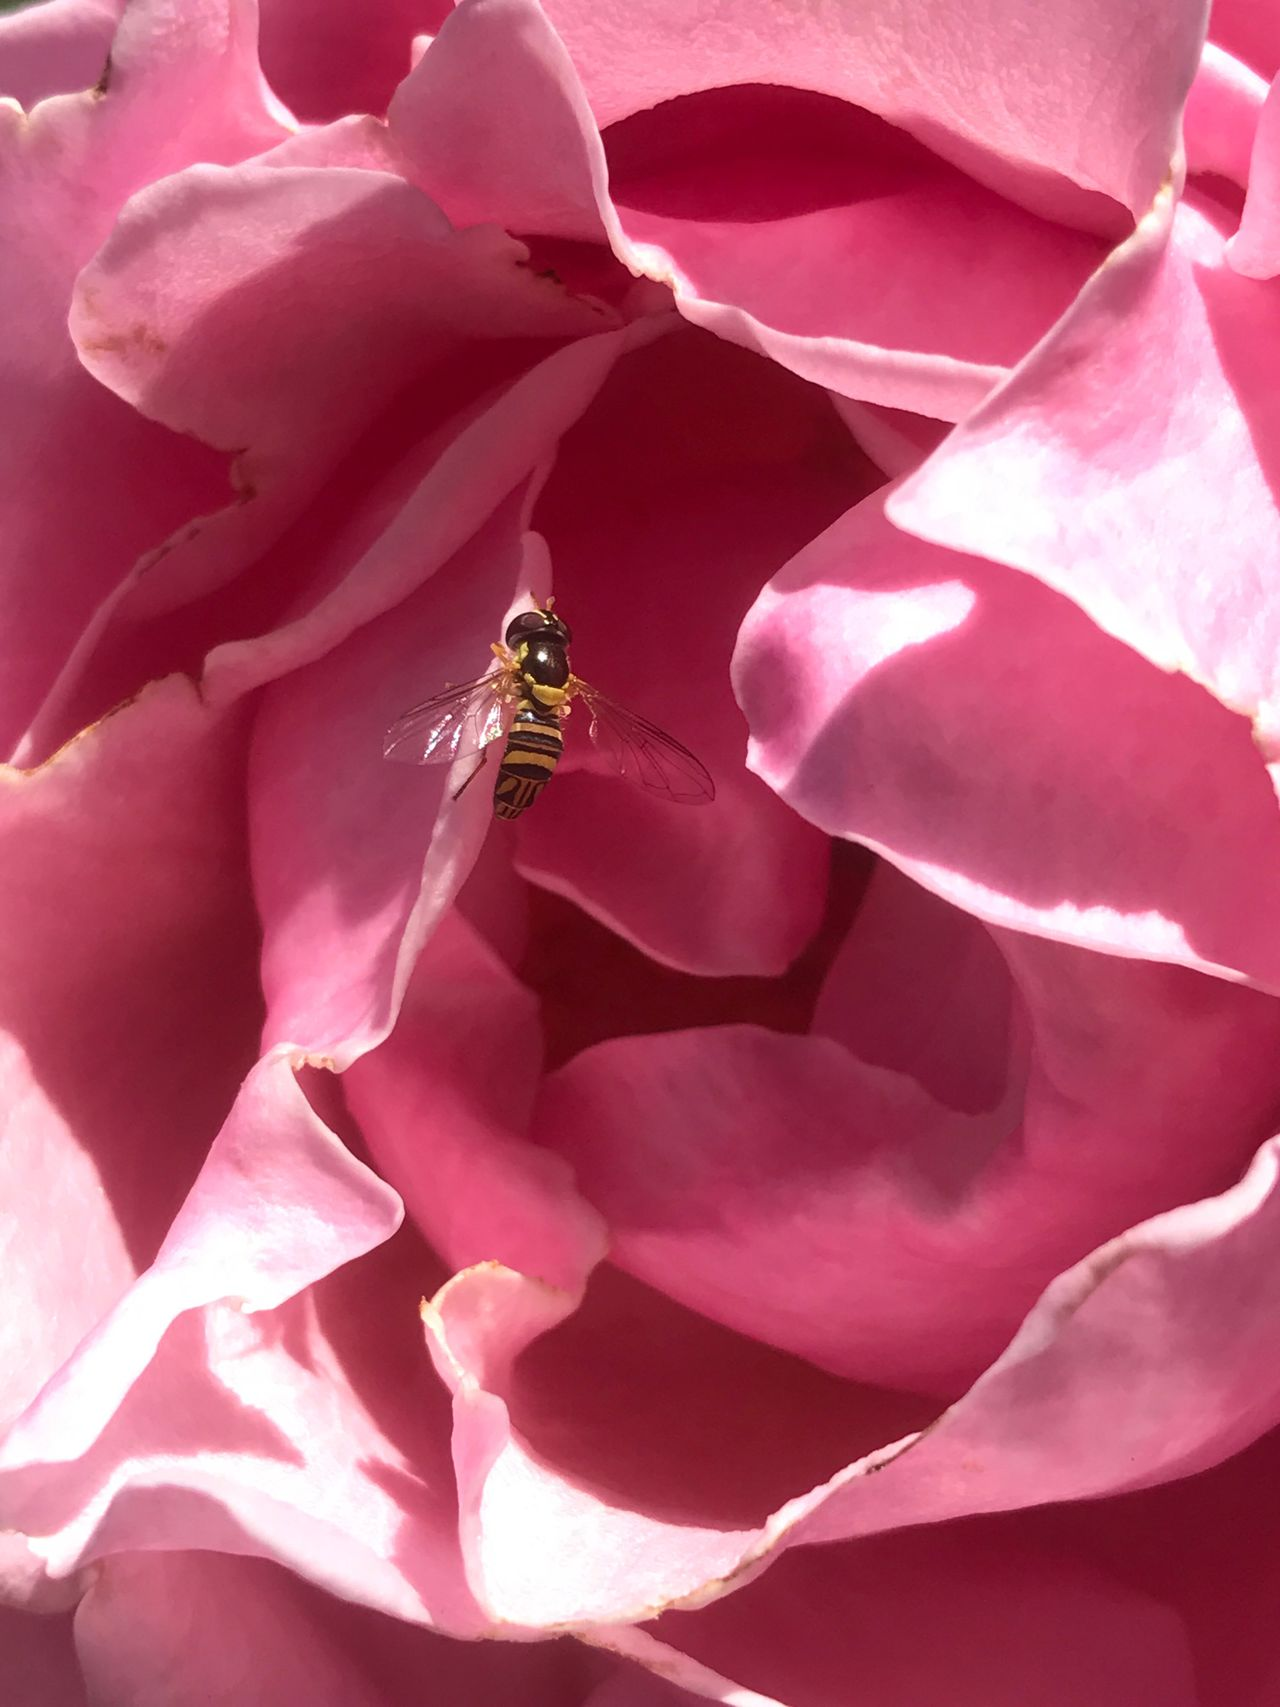 One Animal Flower Insect Petal Animal Themes Animals In The Wild No People Nature Close-up Day High Angle View Fragility Beauty In Nature Animal Wildlife Outdoors Full Frame Growth Flower Head Full Length Freshness Rosé Pink Rose Bee Wasp Wasp On A Rose